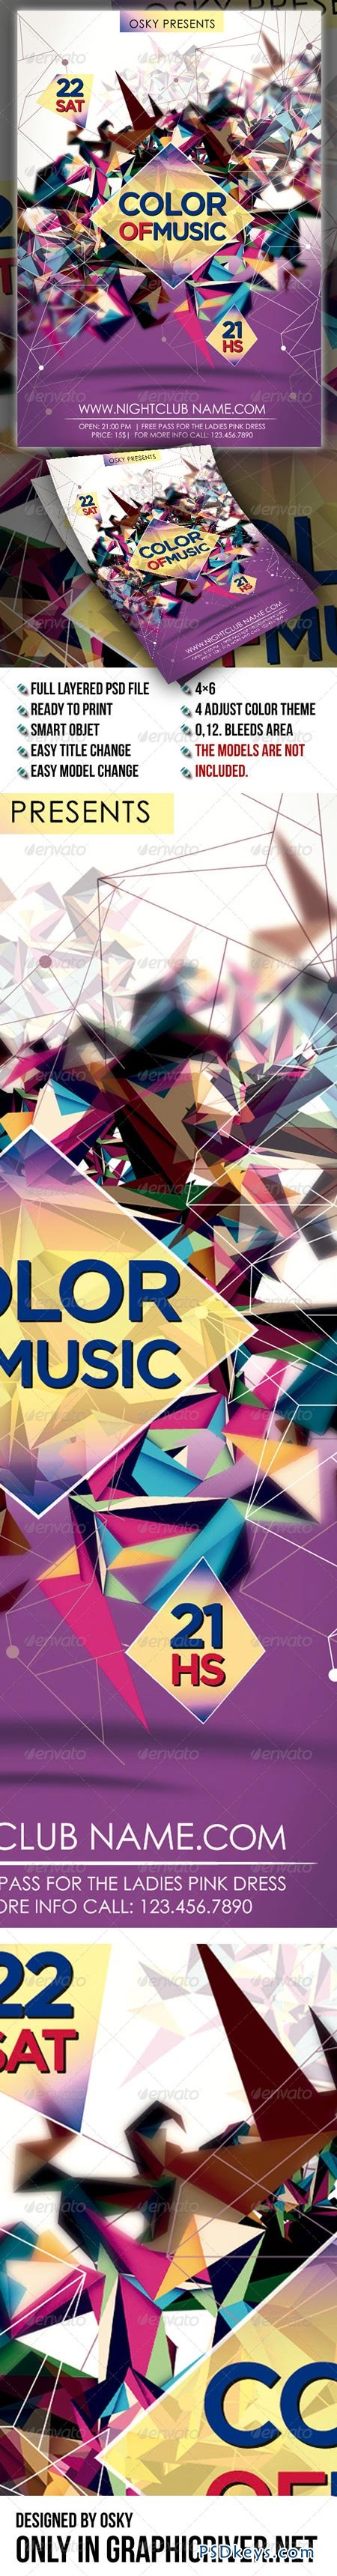 Color Of Music 6898137